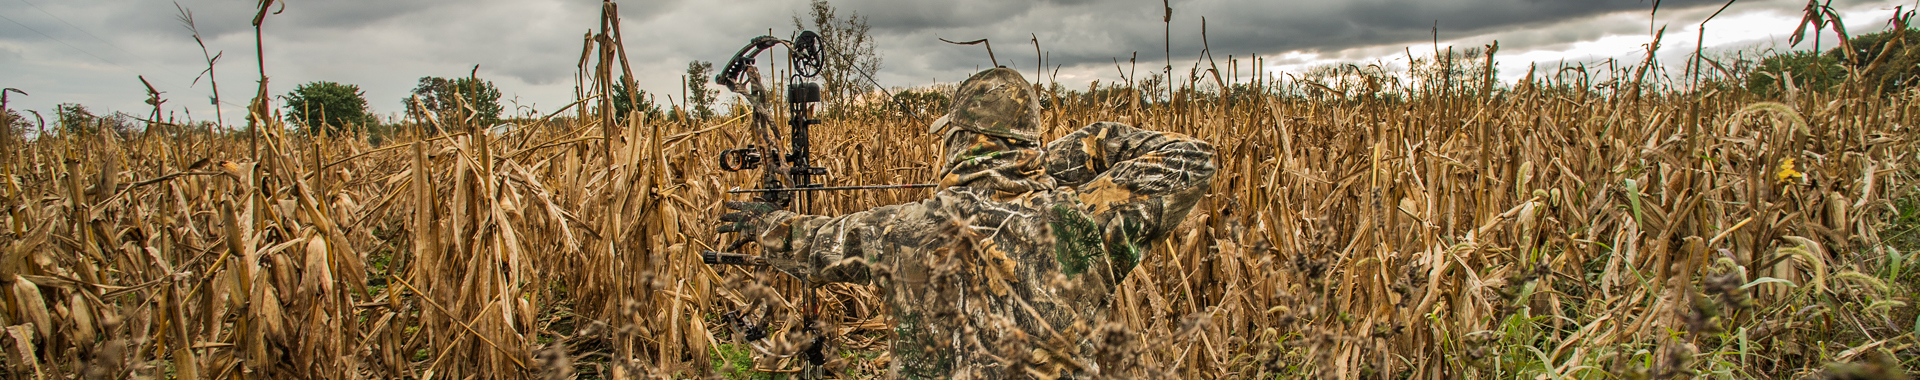 Man in camo hunting in a cornfield